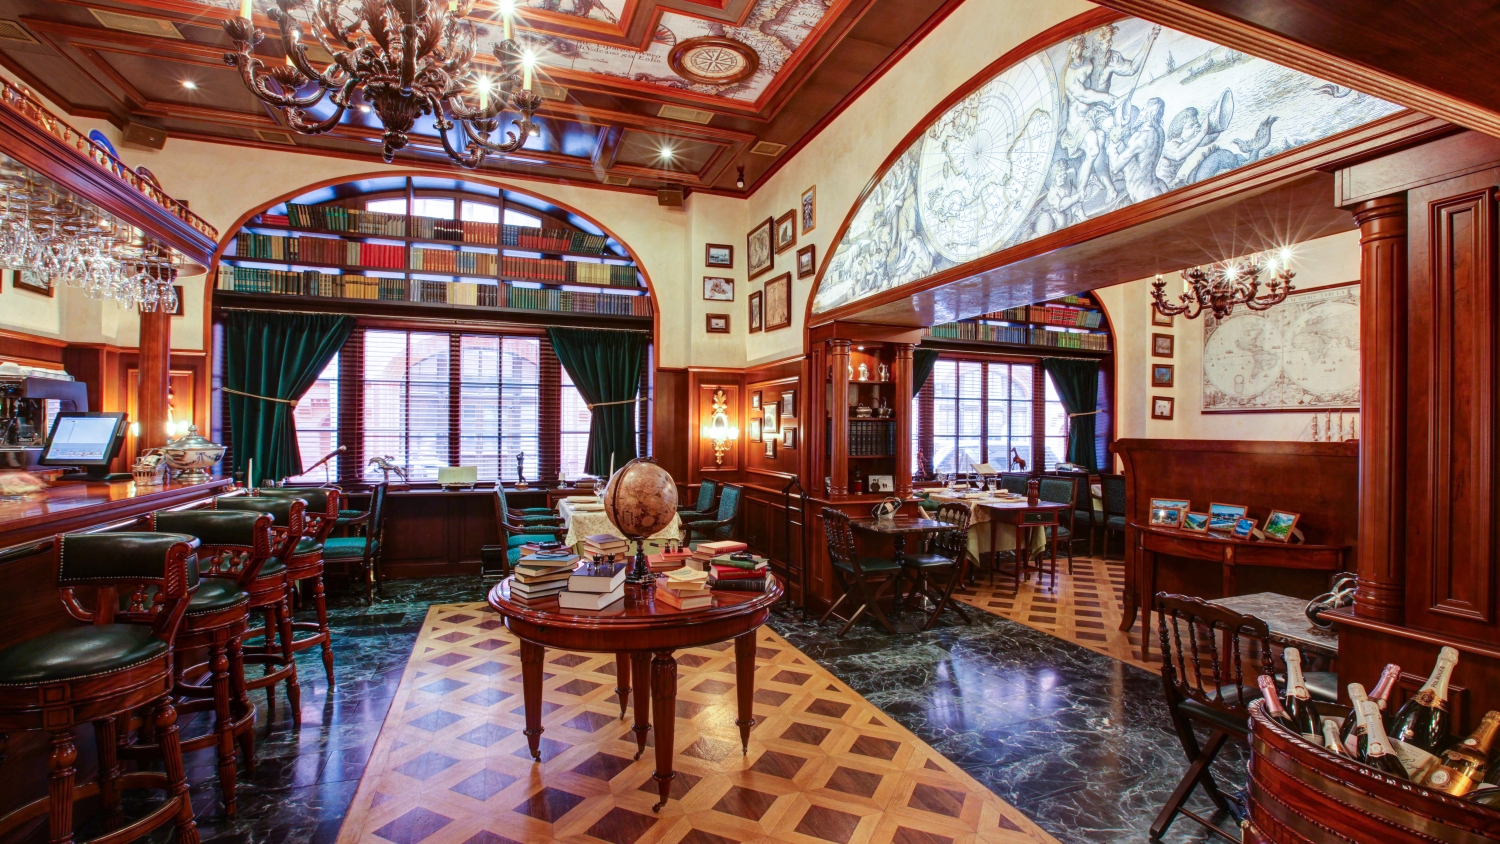 Russian Geographic Society restaurant